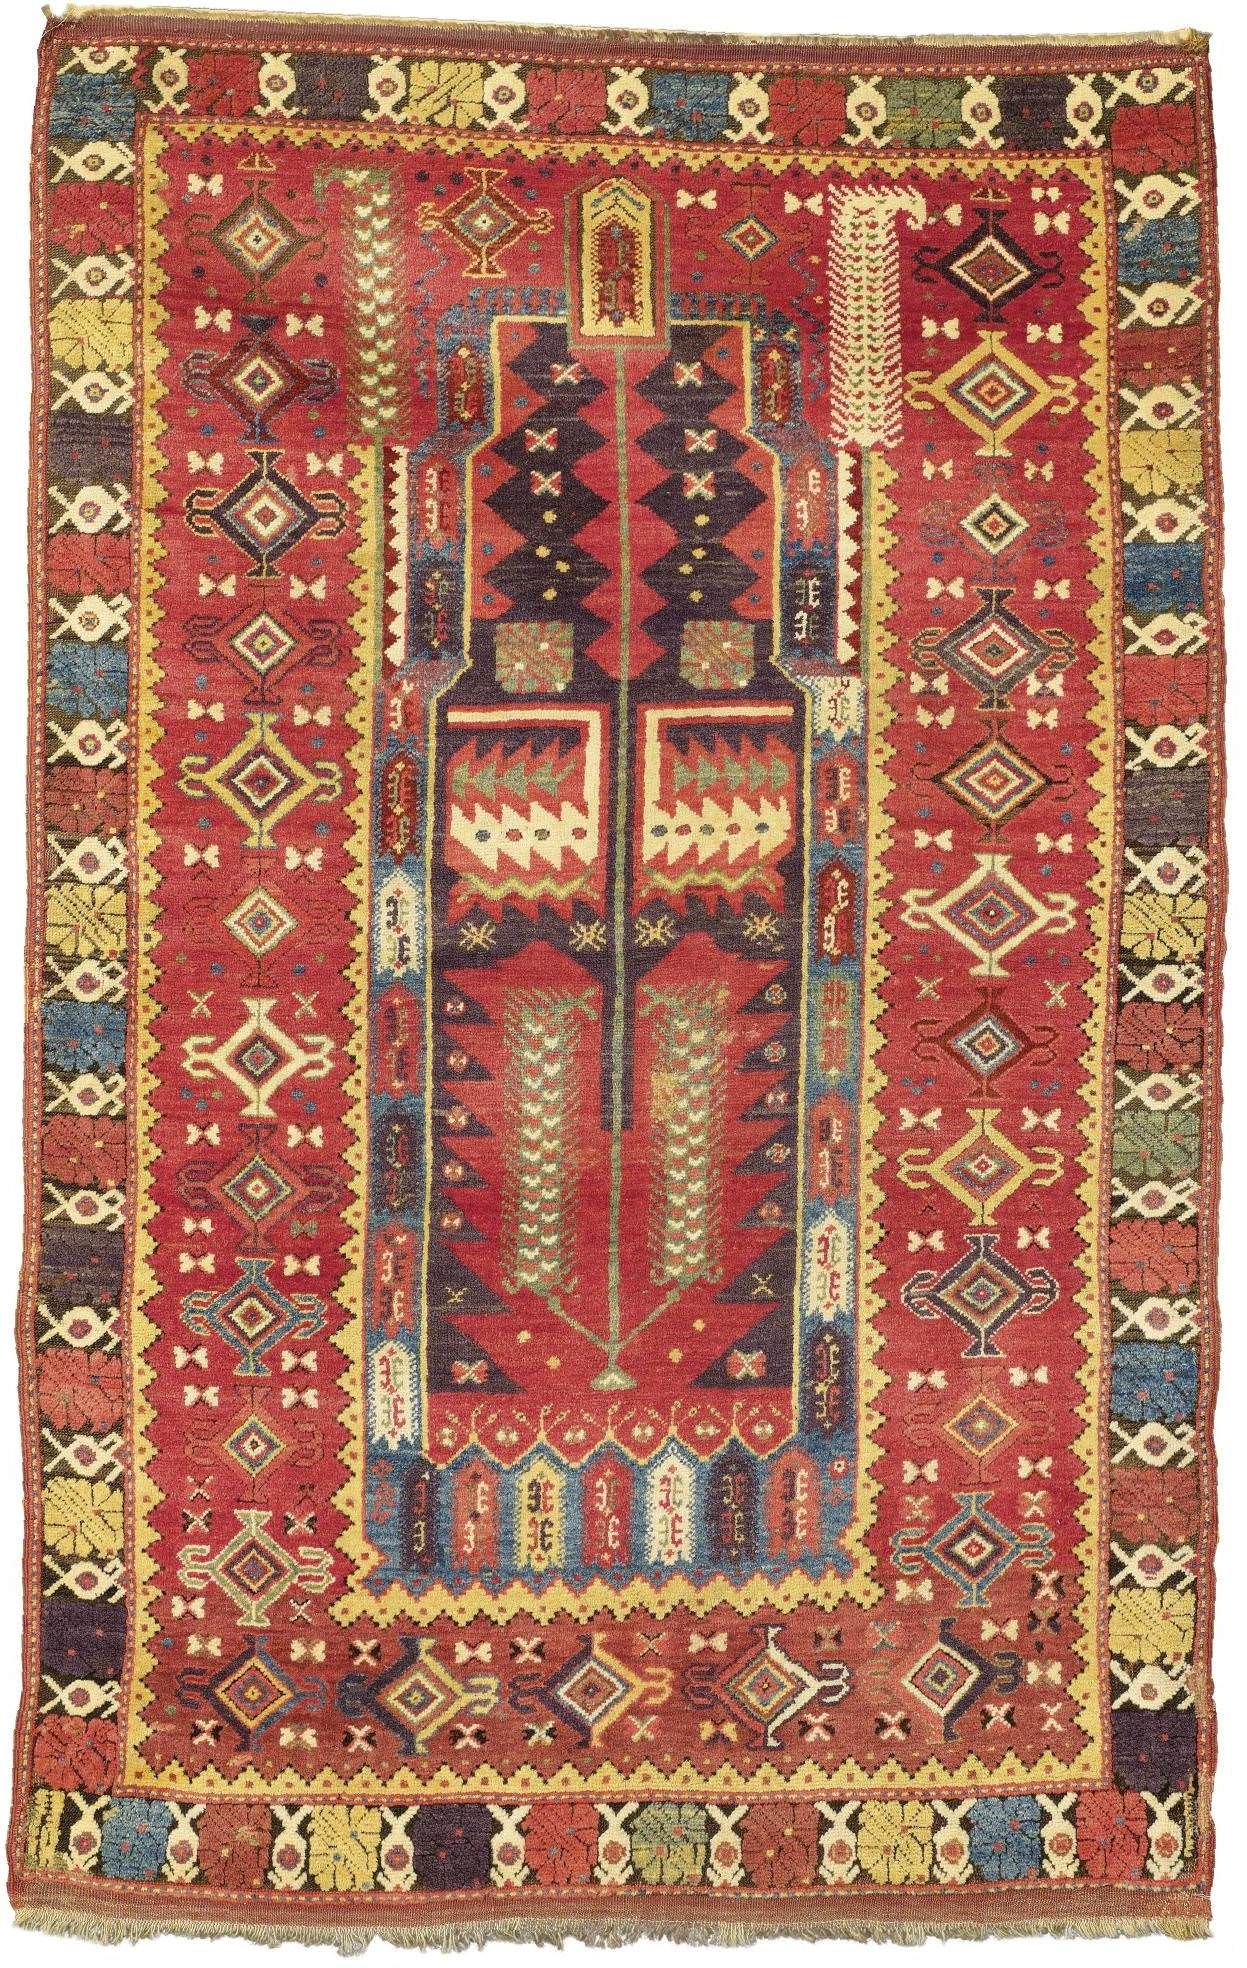 Turkish Melas Rug Turkish Rug Animal Rug Rugs